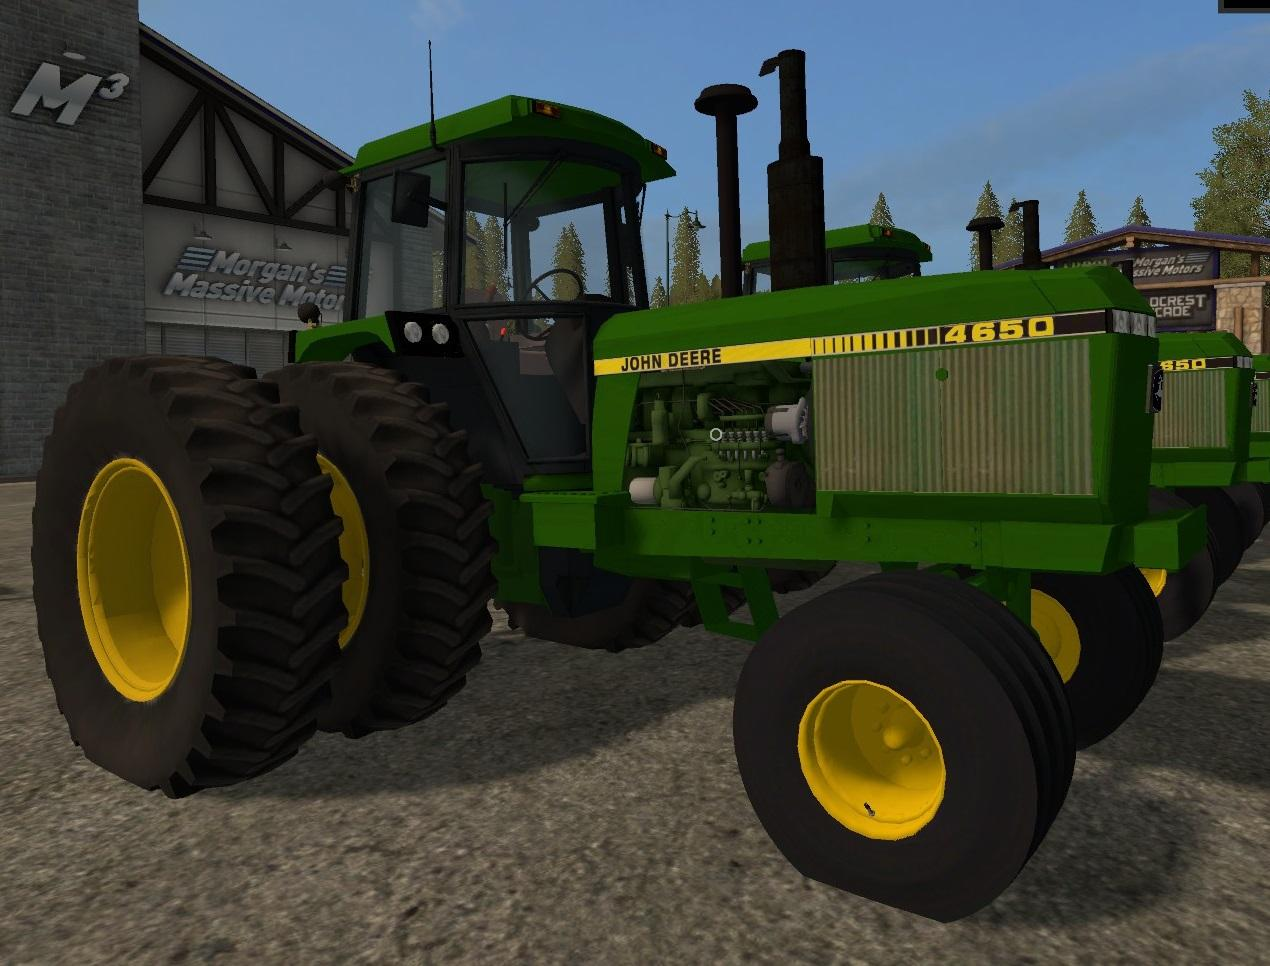 OLD IRON JD Series 2WD v1 0 0